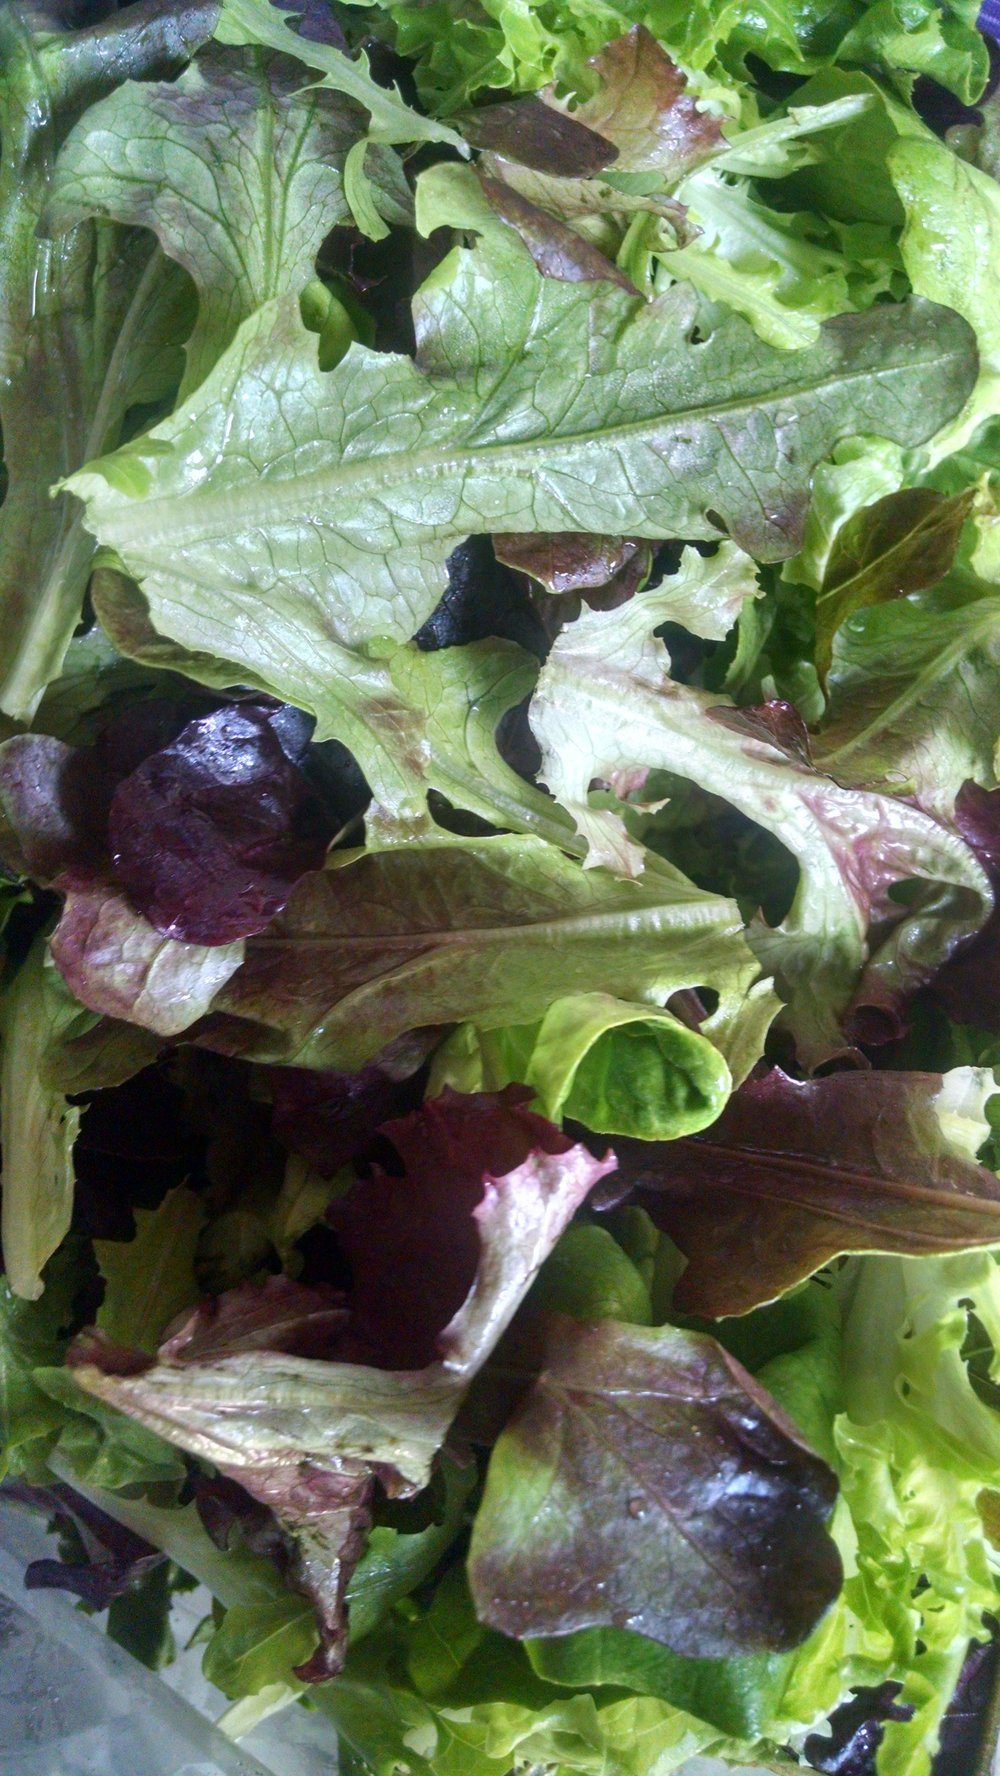 Ready to eat salad mix